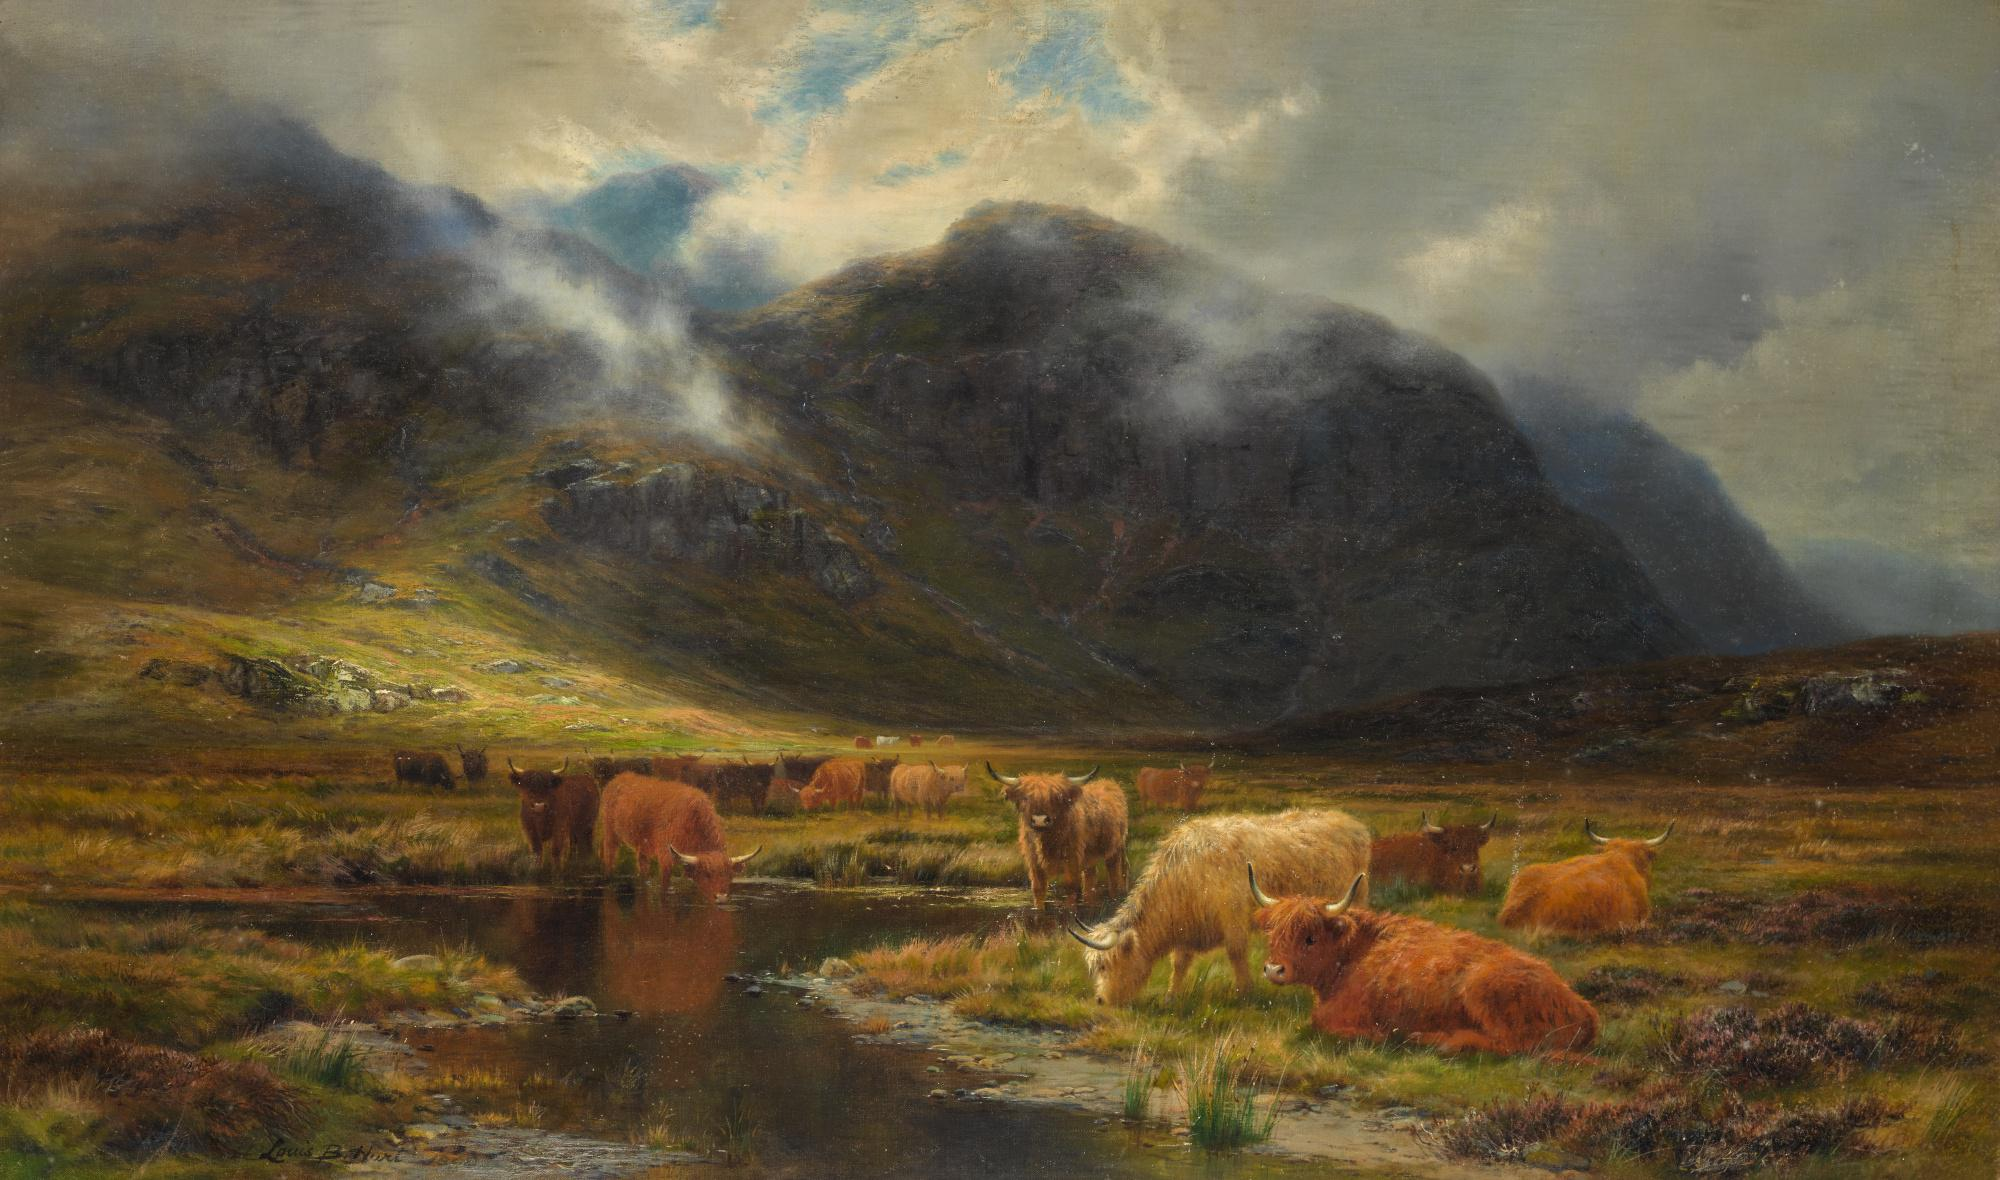 LOUIS BOSWORTH HURT | CATTLE IN A HIGHLAND LANDSCAPE